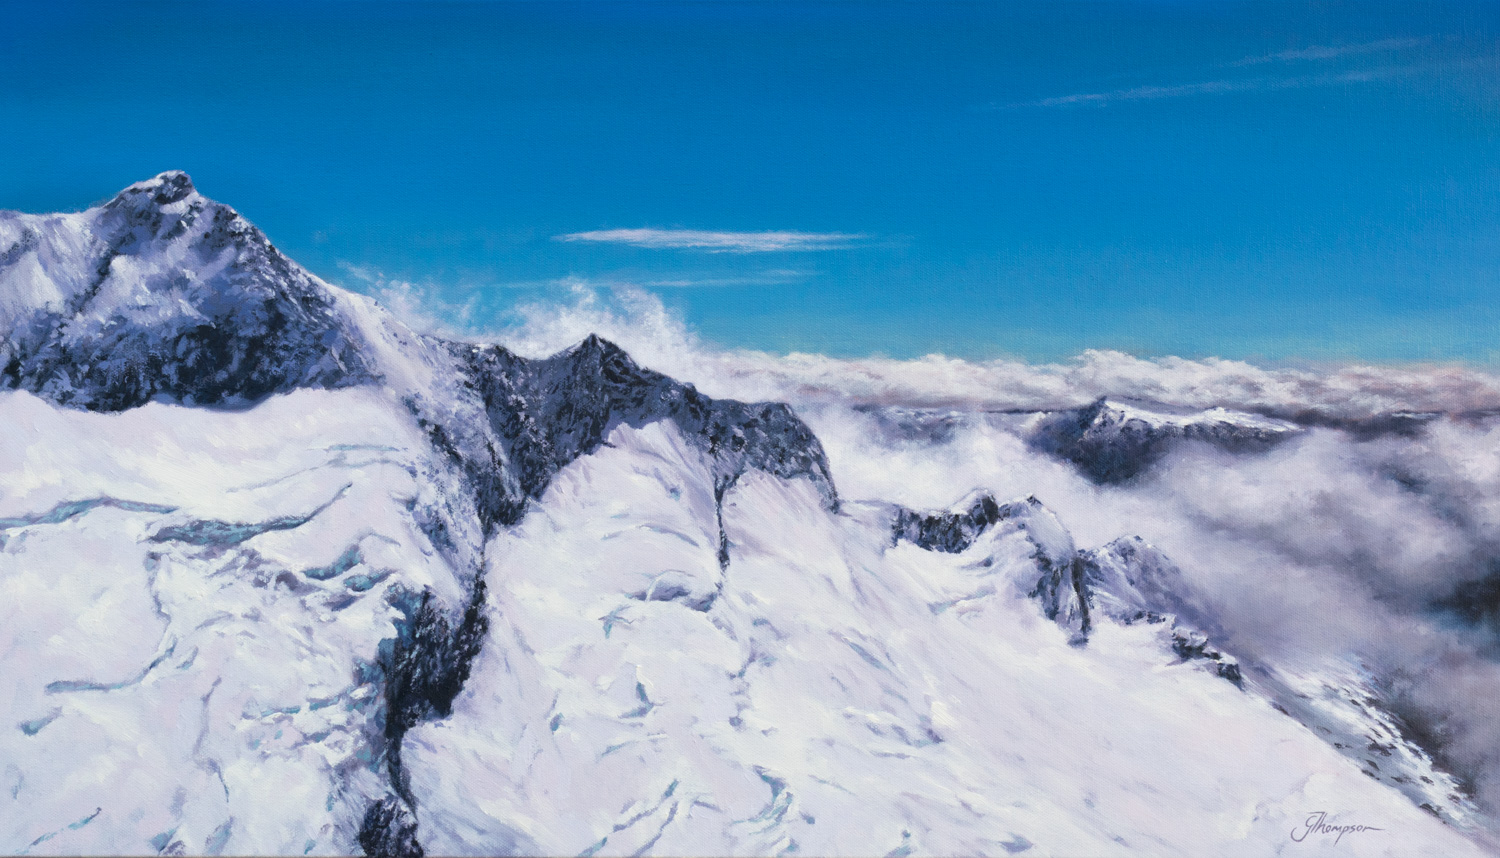 Mt Aspiring - Private Collection